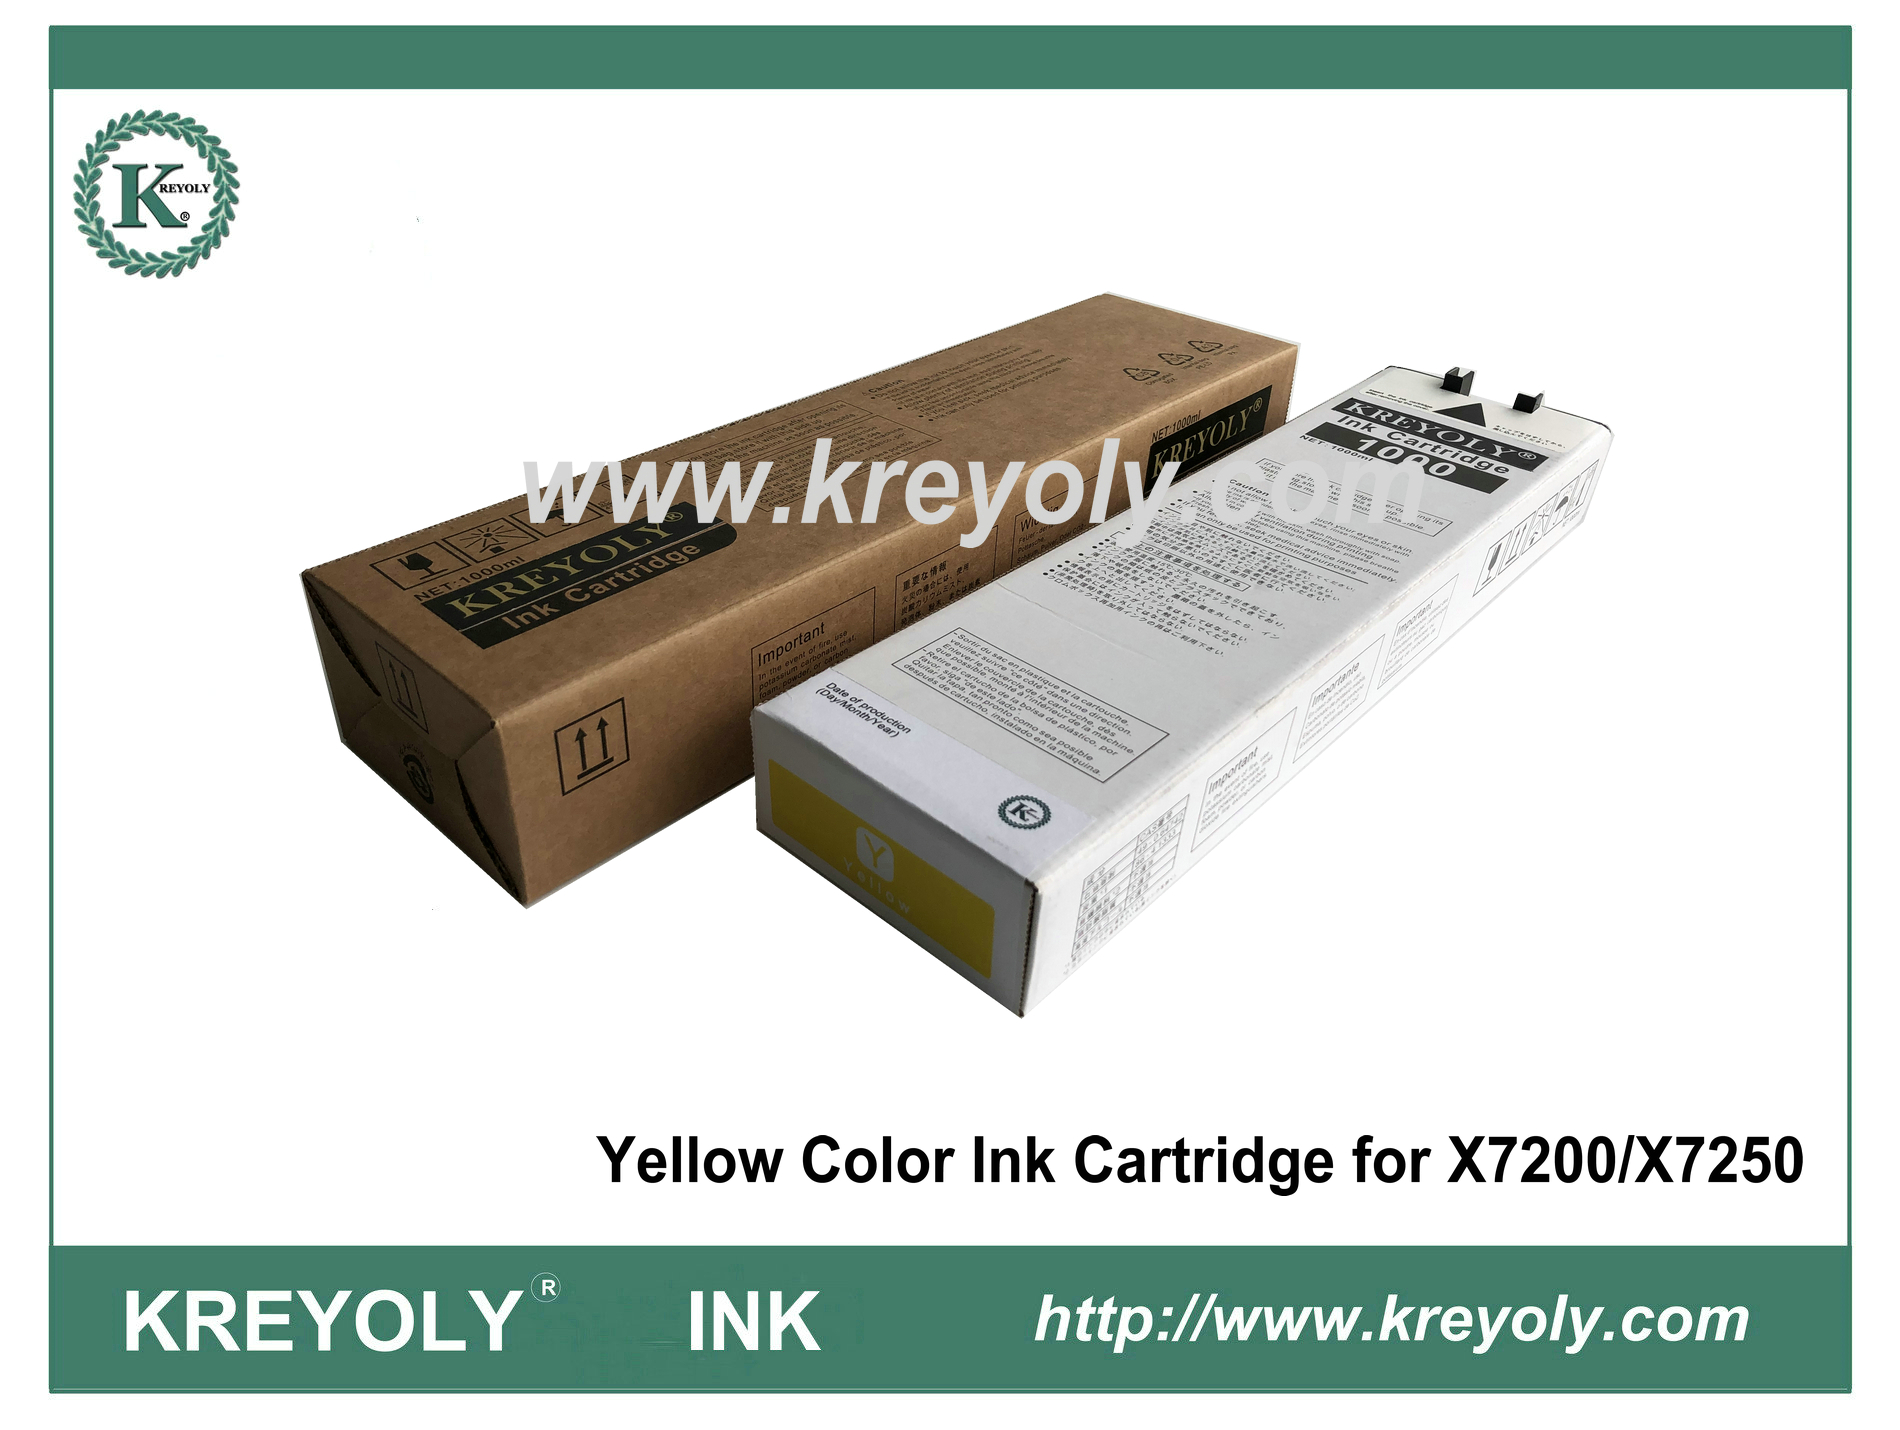 Riso Orphis ComColor X7200 X7250 Ink Cartridge